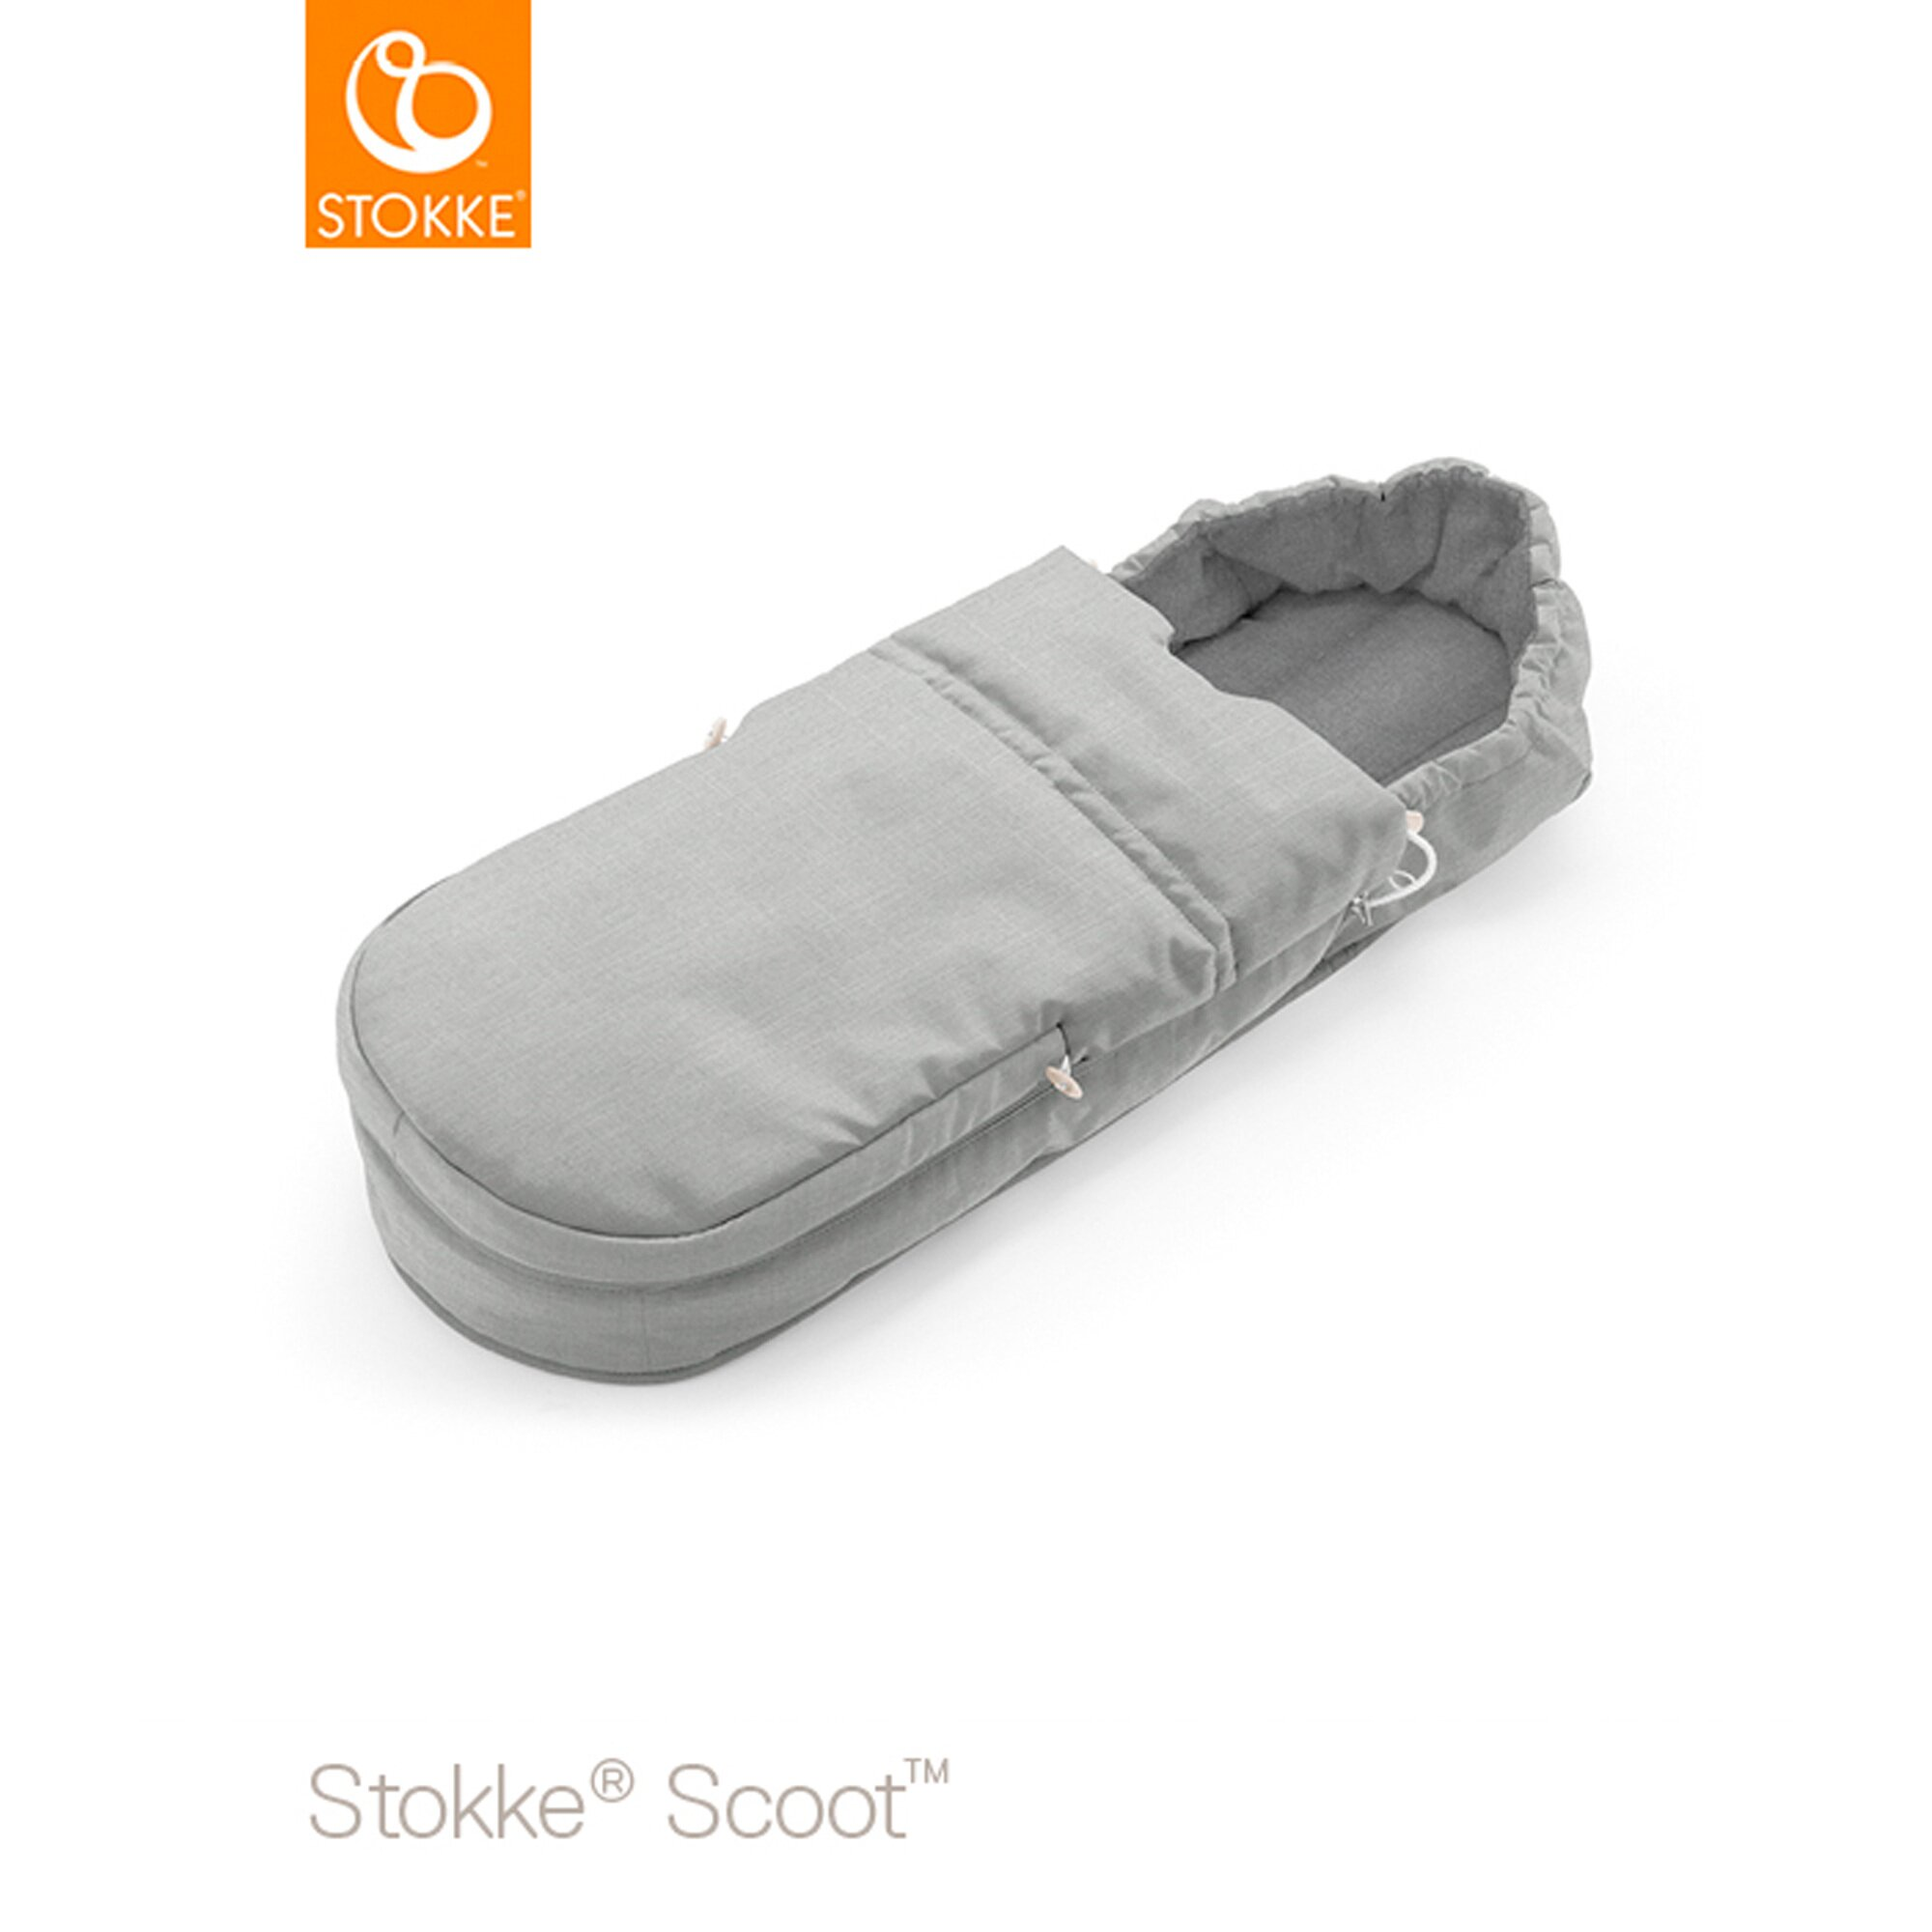 Scoot Softbag grau